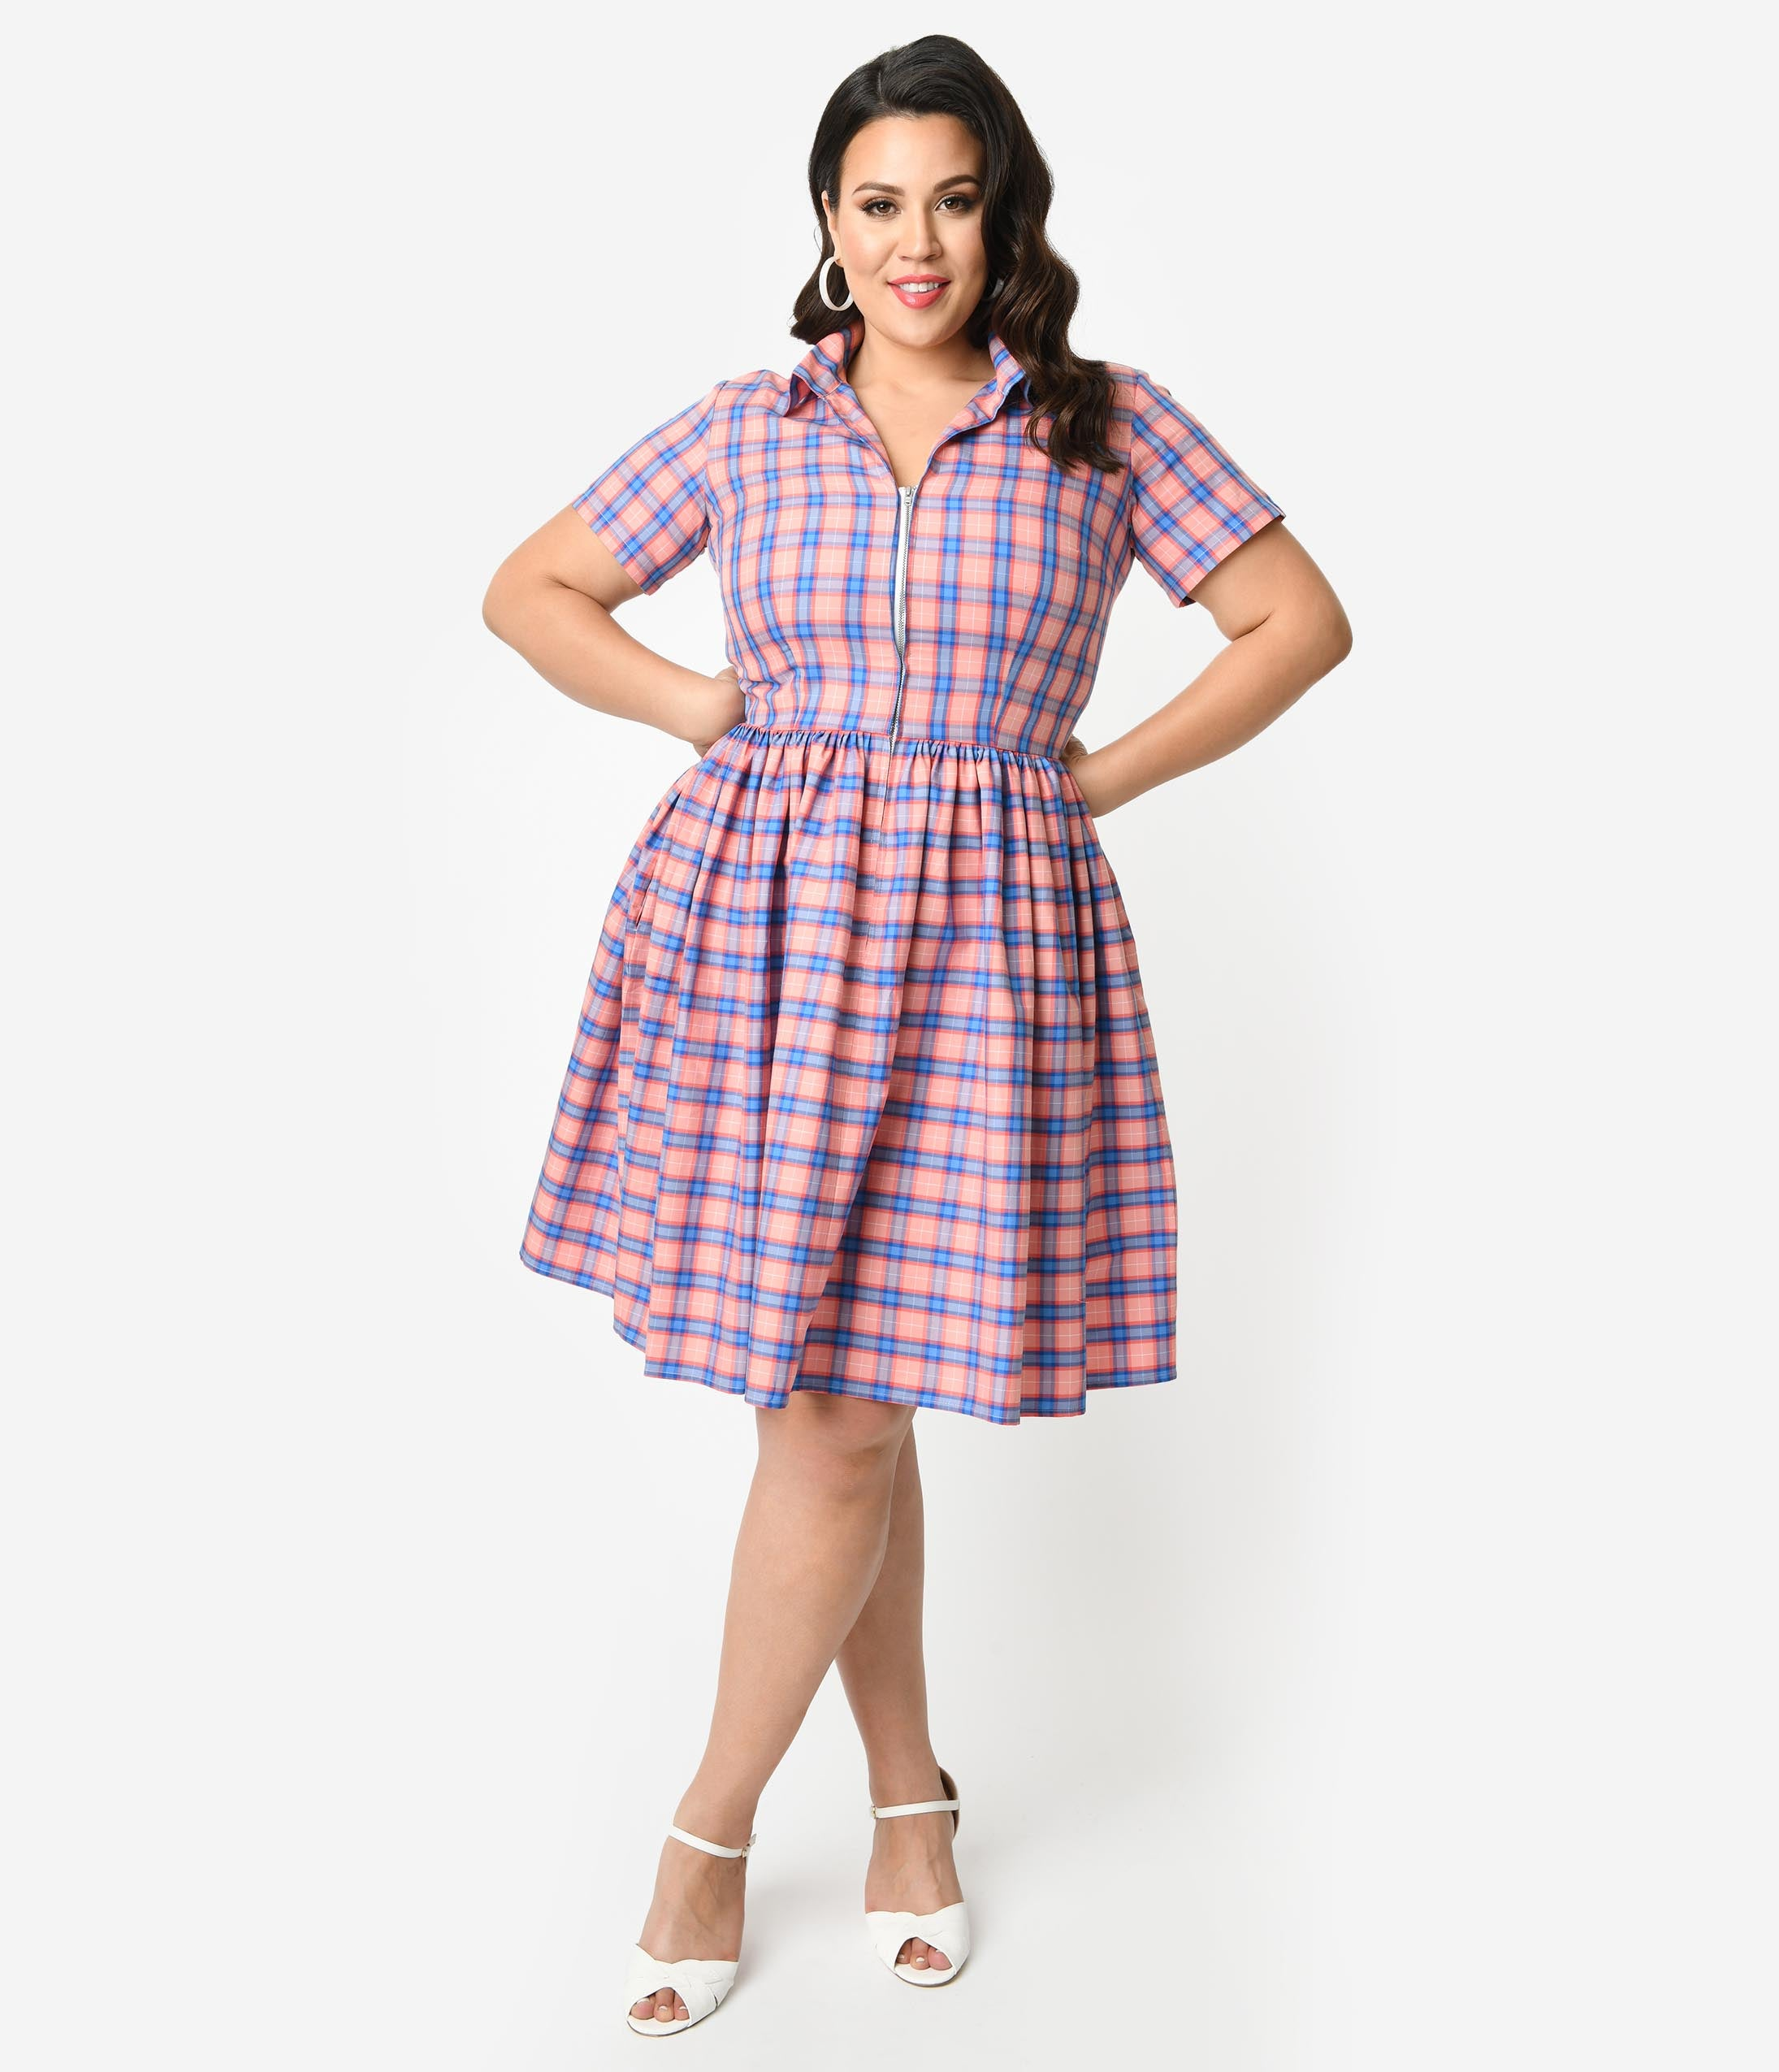 418c18b1c1c 1950s Housewife Dress